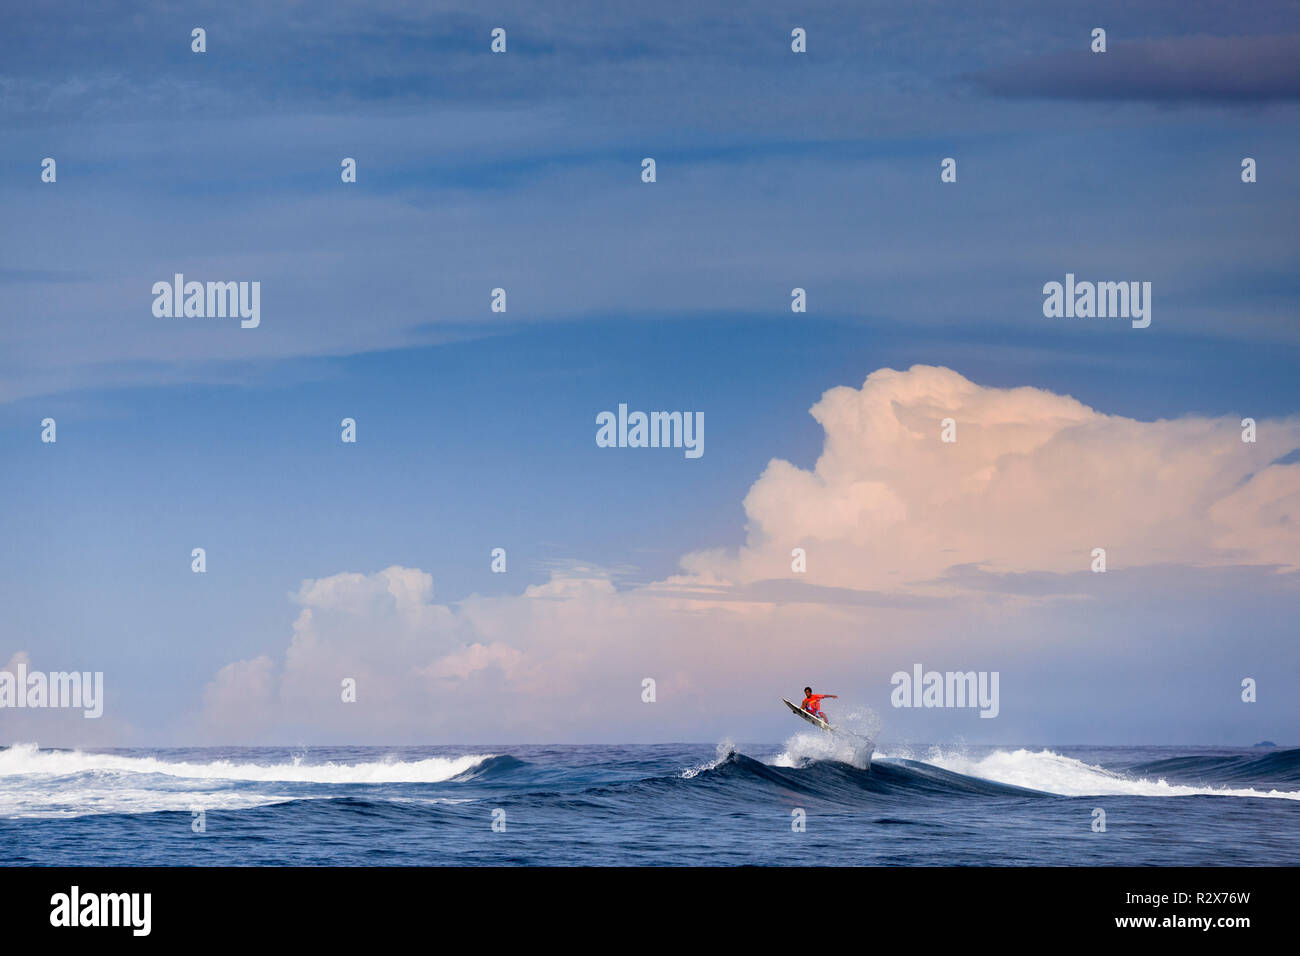 Remote reef break, 'John Candy's', in the Mentawi Islands, Indonesia. - Stock Image